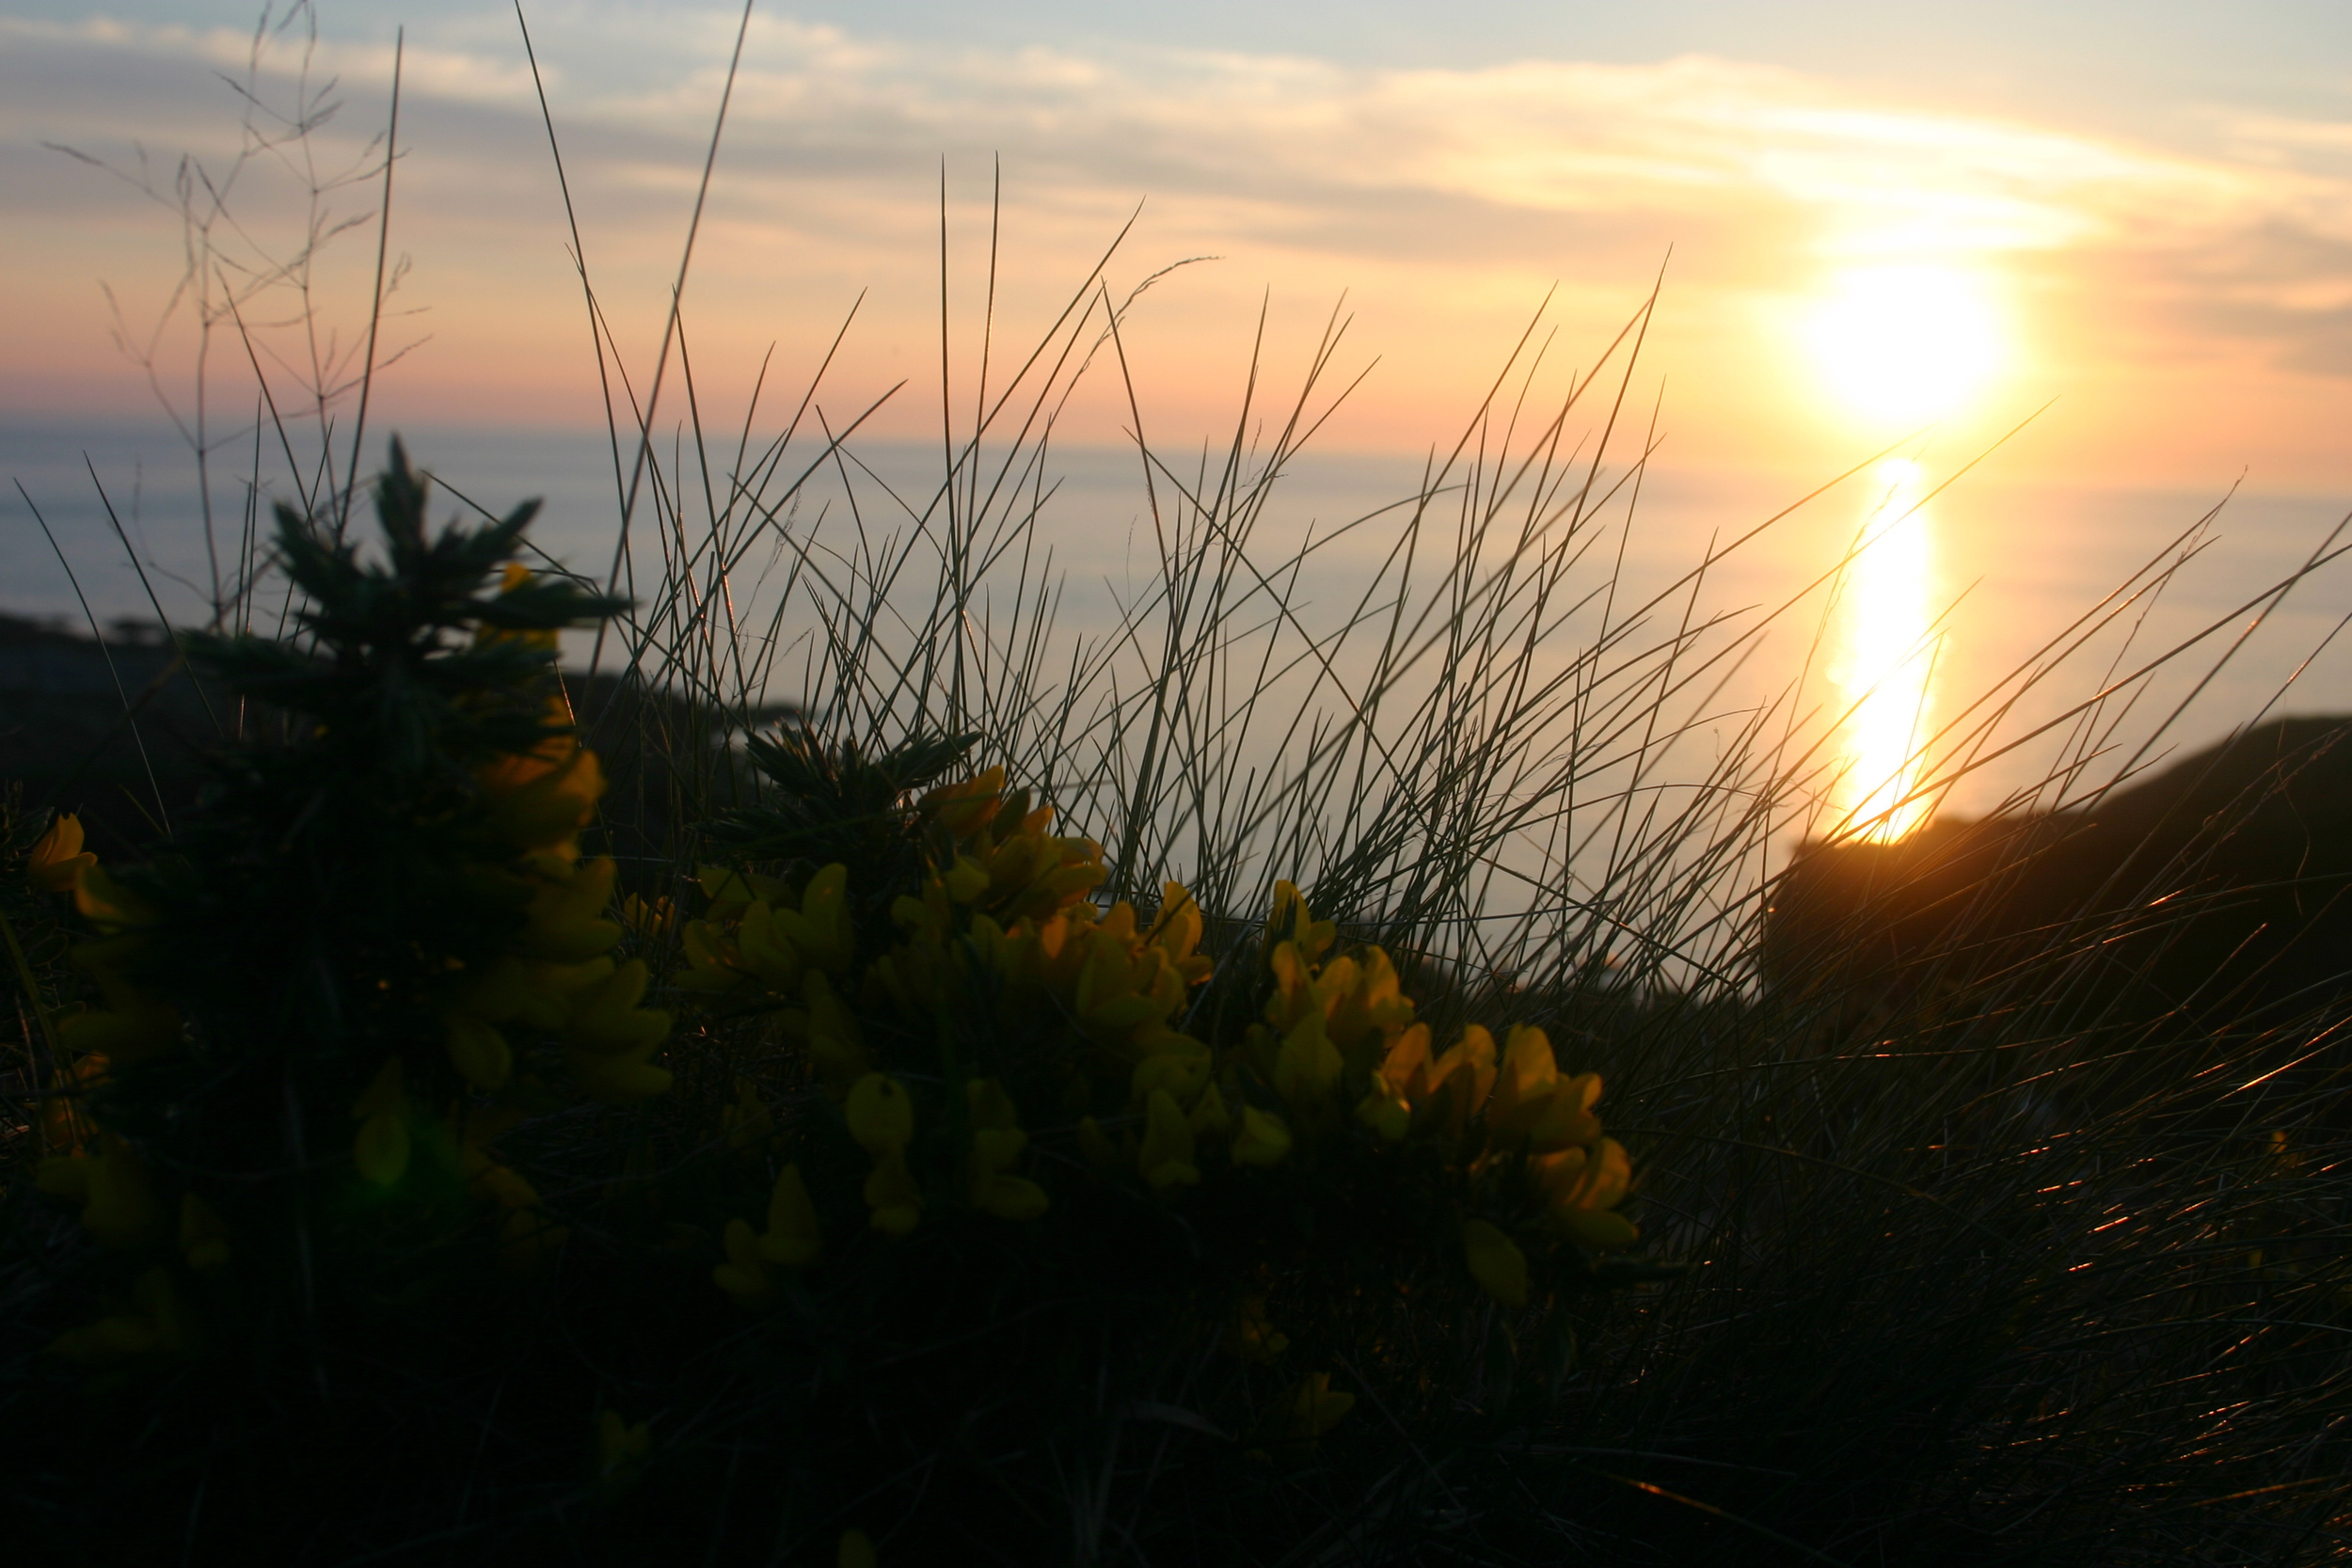 Sunset from Niarbyl, Isle of Man